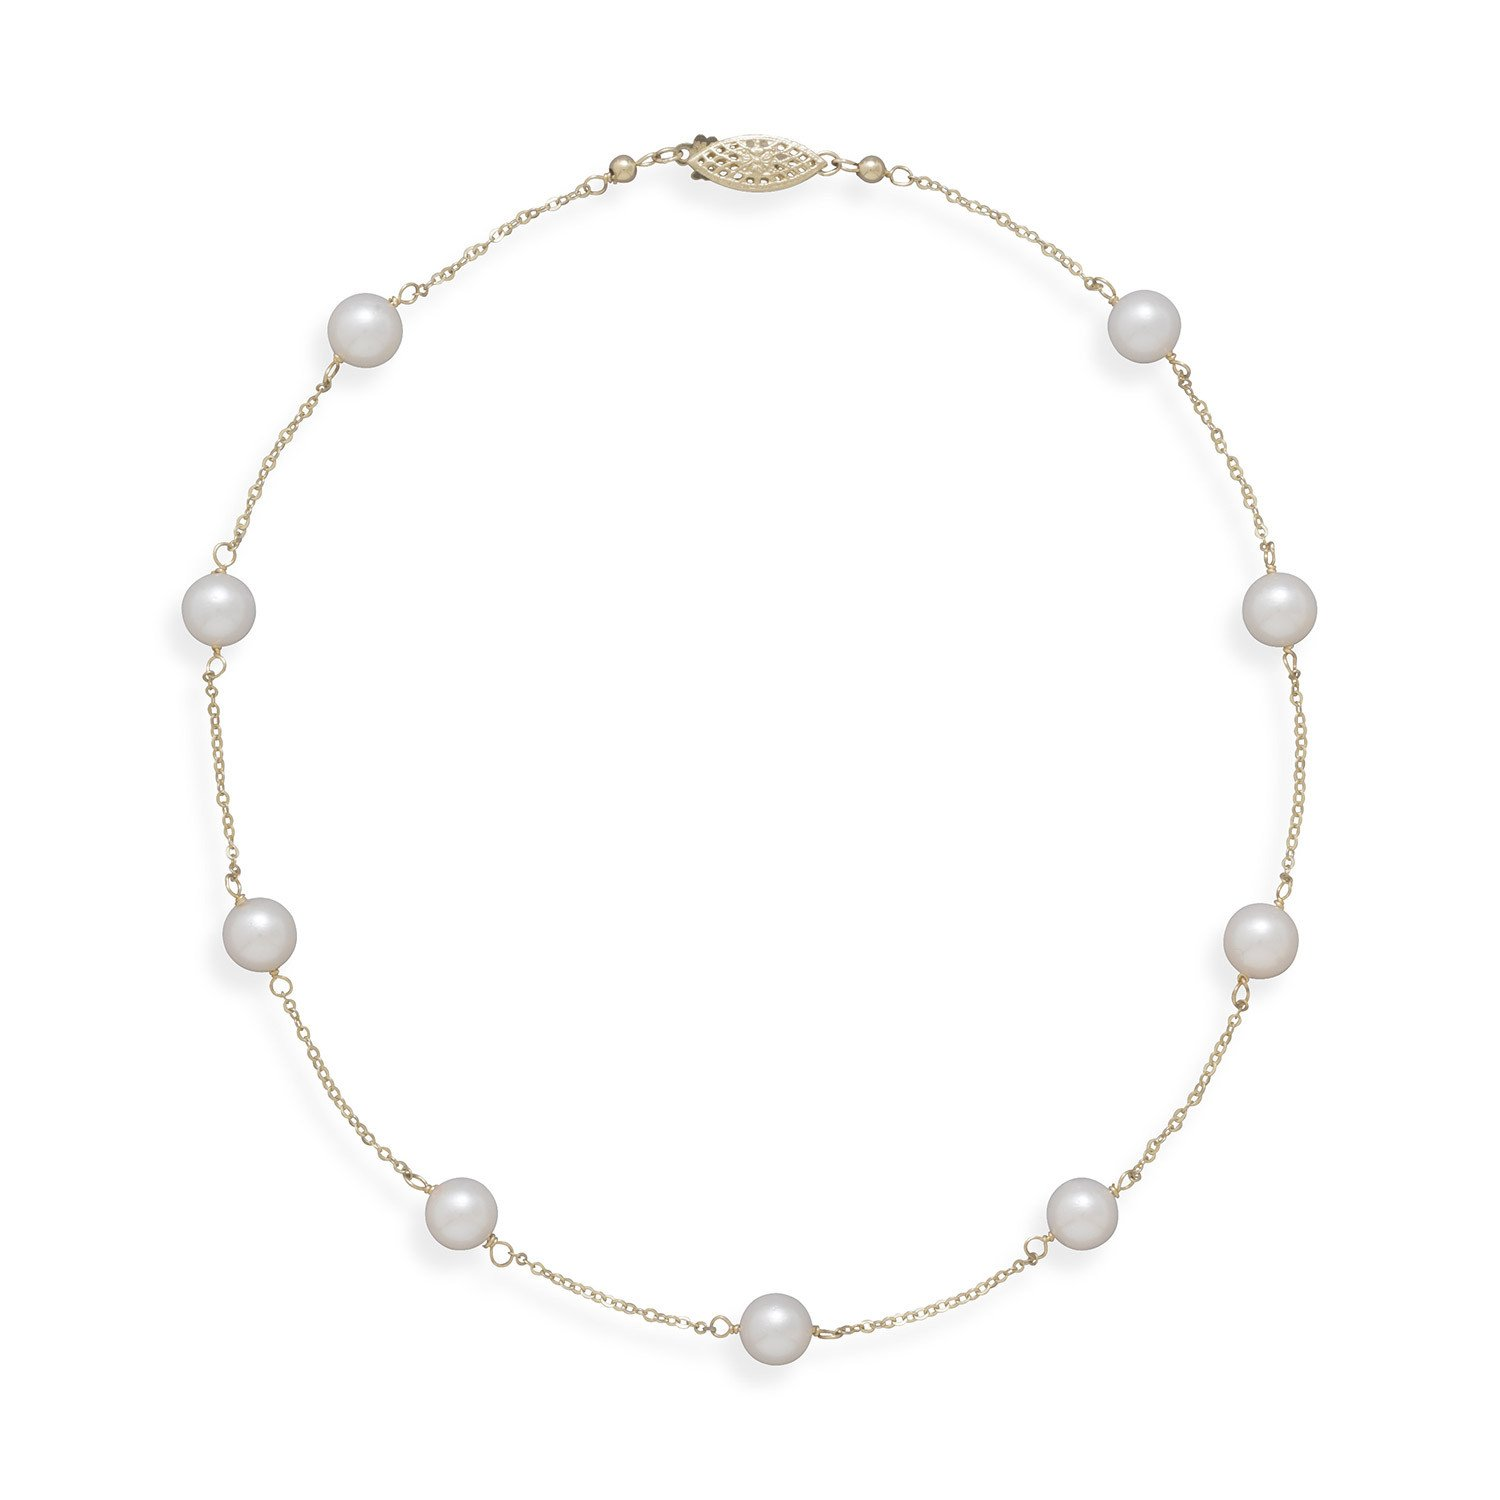 16″ 14K Yellow Gold Chain with 7mm Grade A Cultured Akoya Pearls